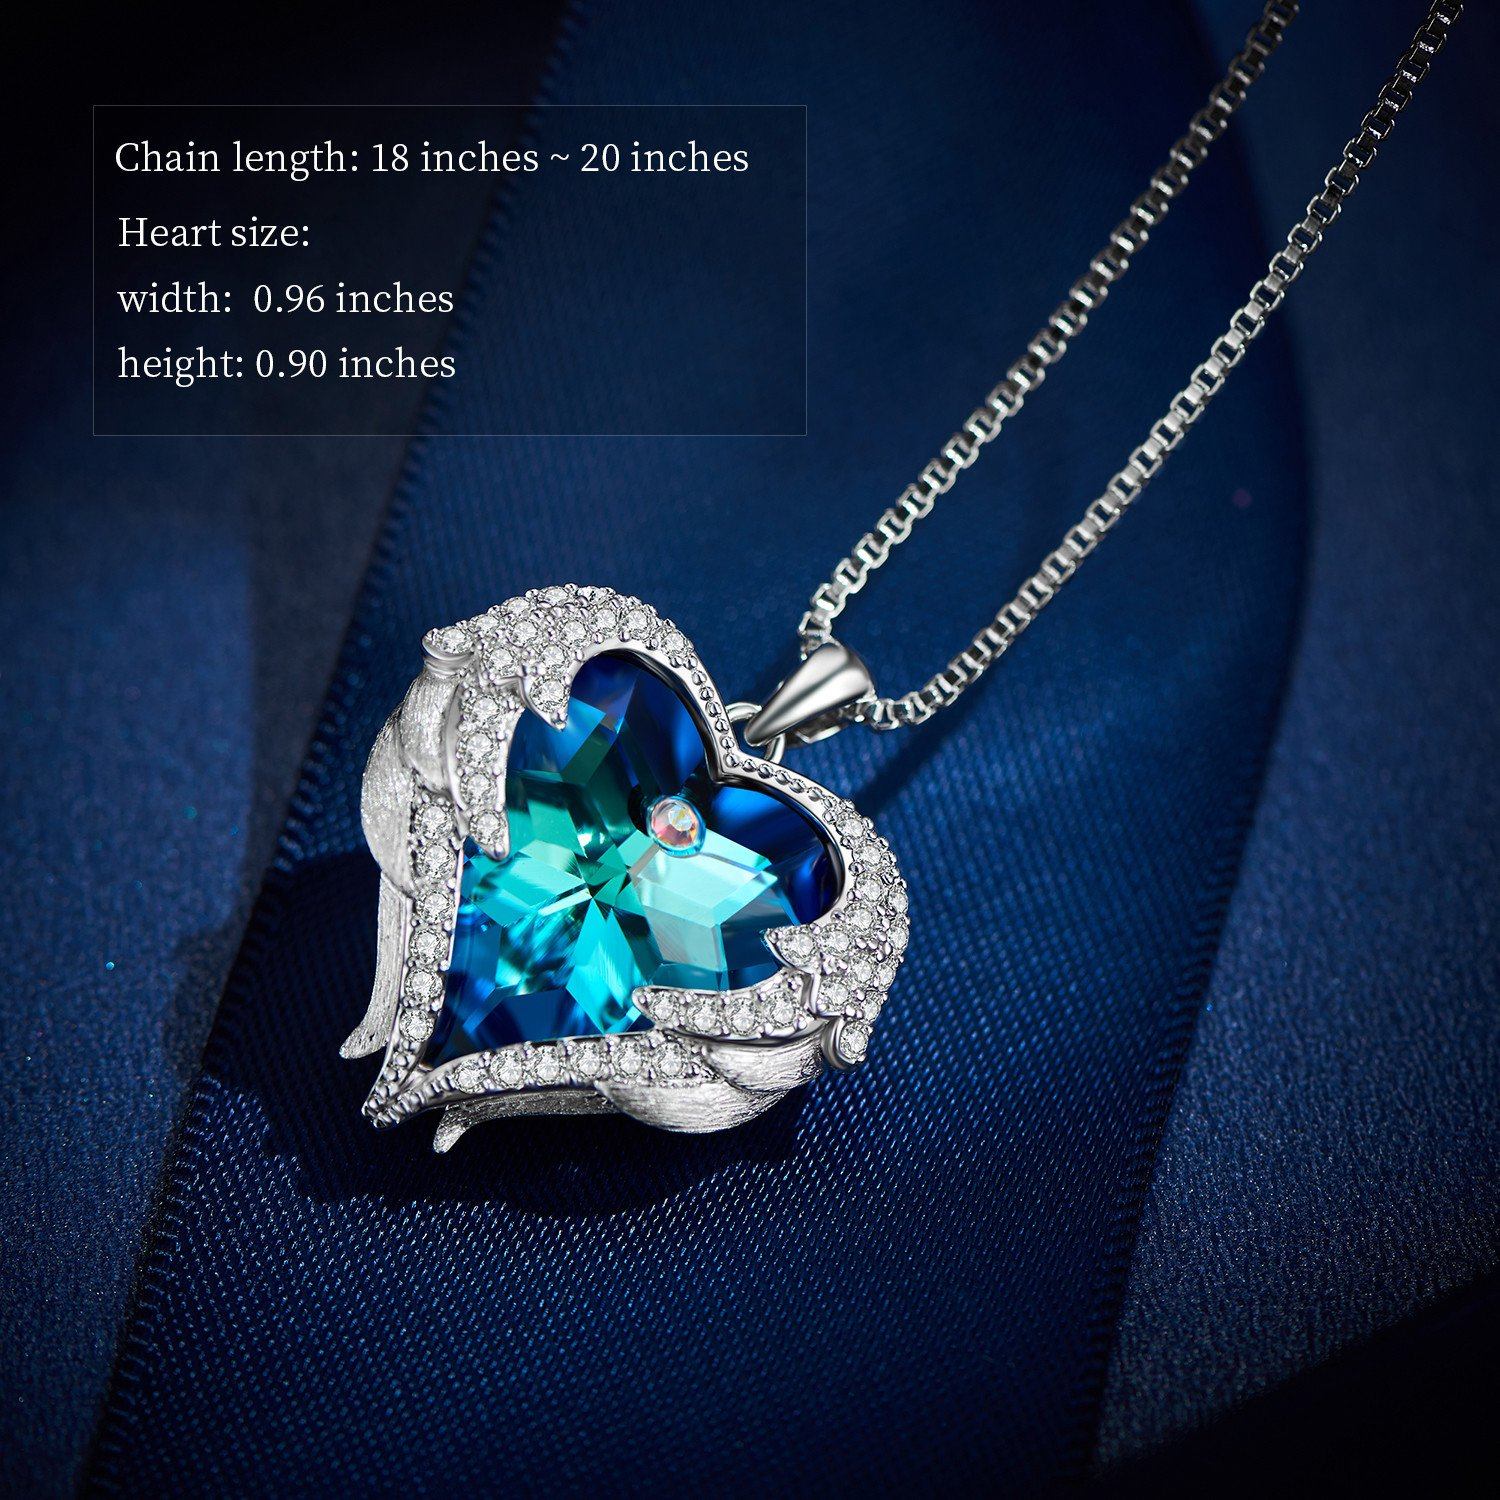 EleShow Love Heart Pendant Necklaces Gifts Jewelry for Women (B_Blue1) by EleShow (Image #5)